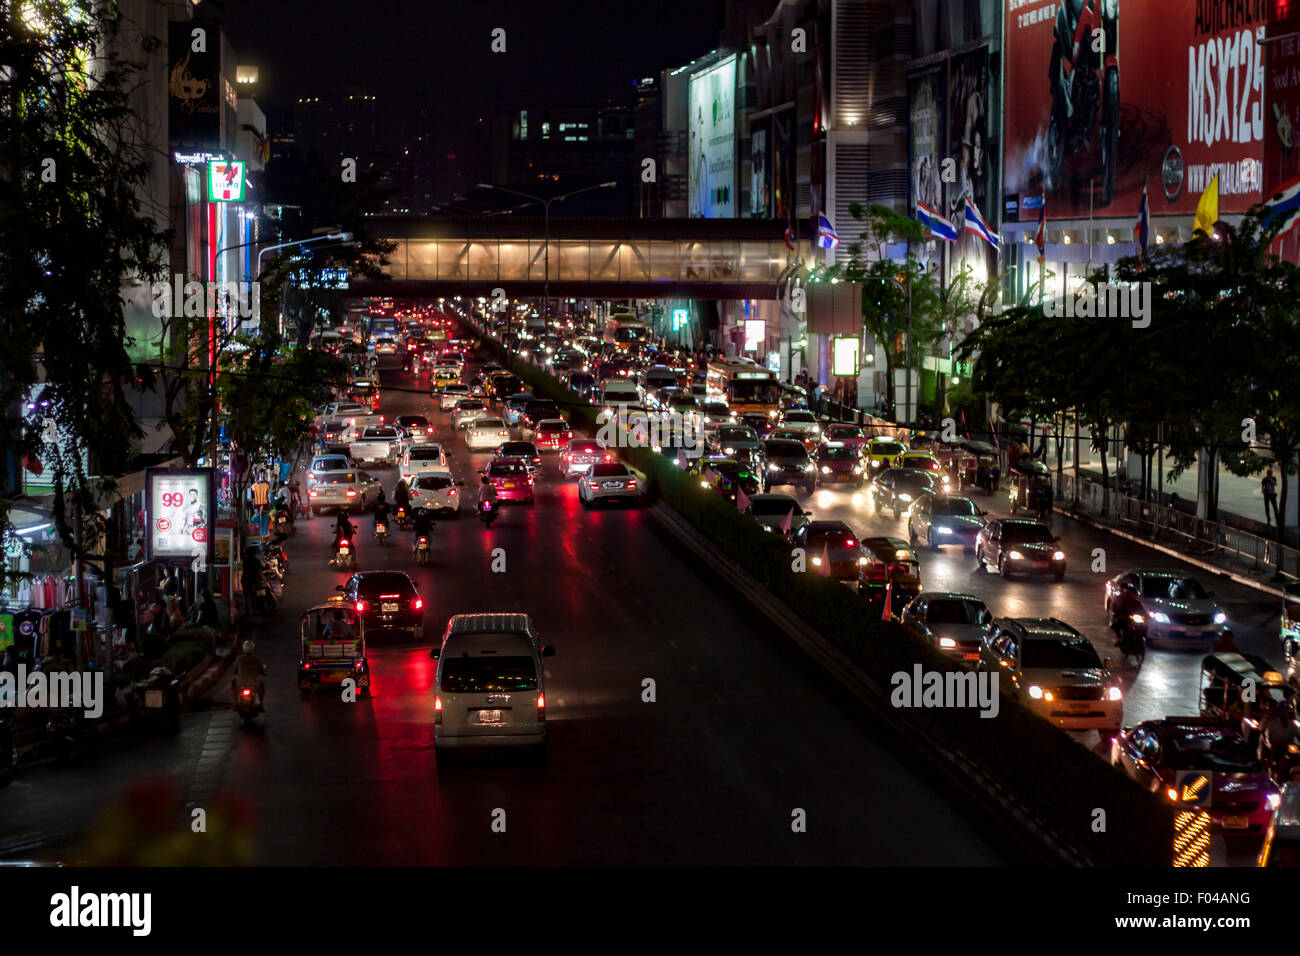 A busy street in Bangkok at night with long queues of stationary cars trying to get through city traffic. - Stock Image